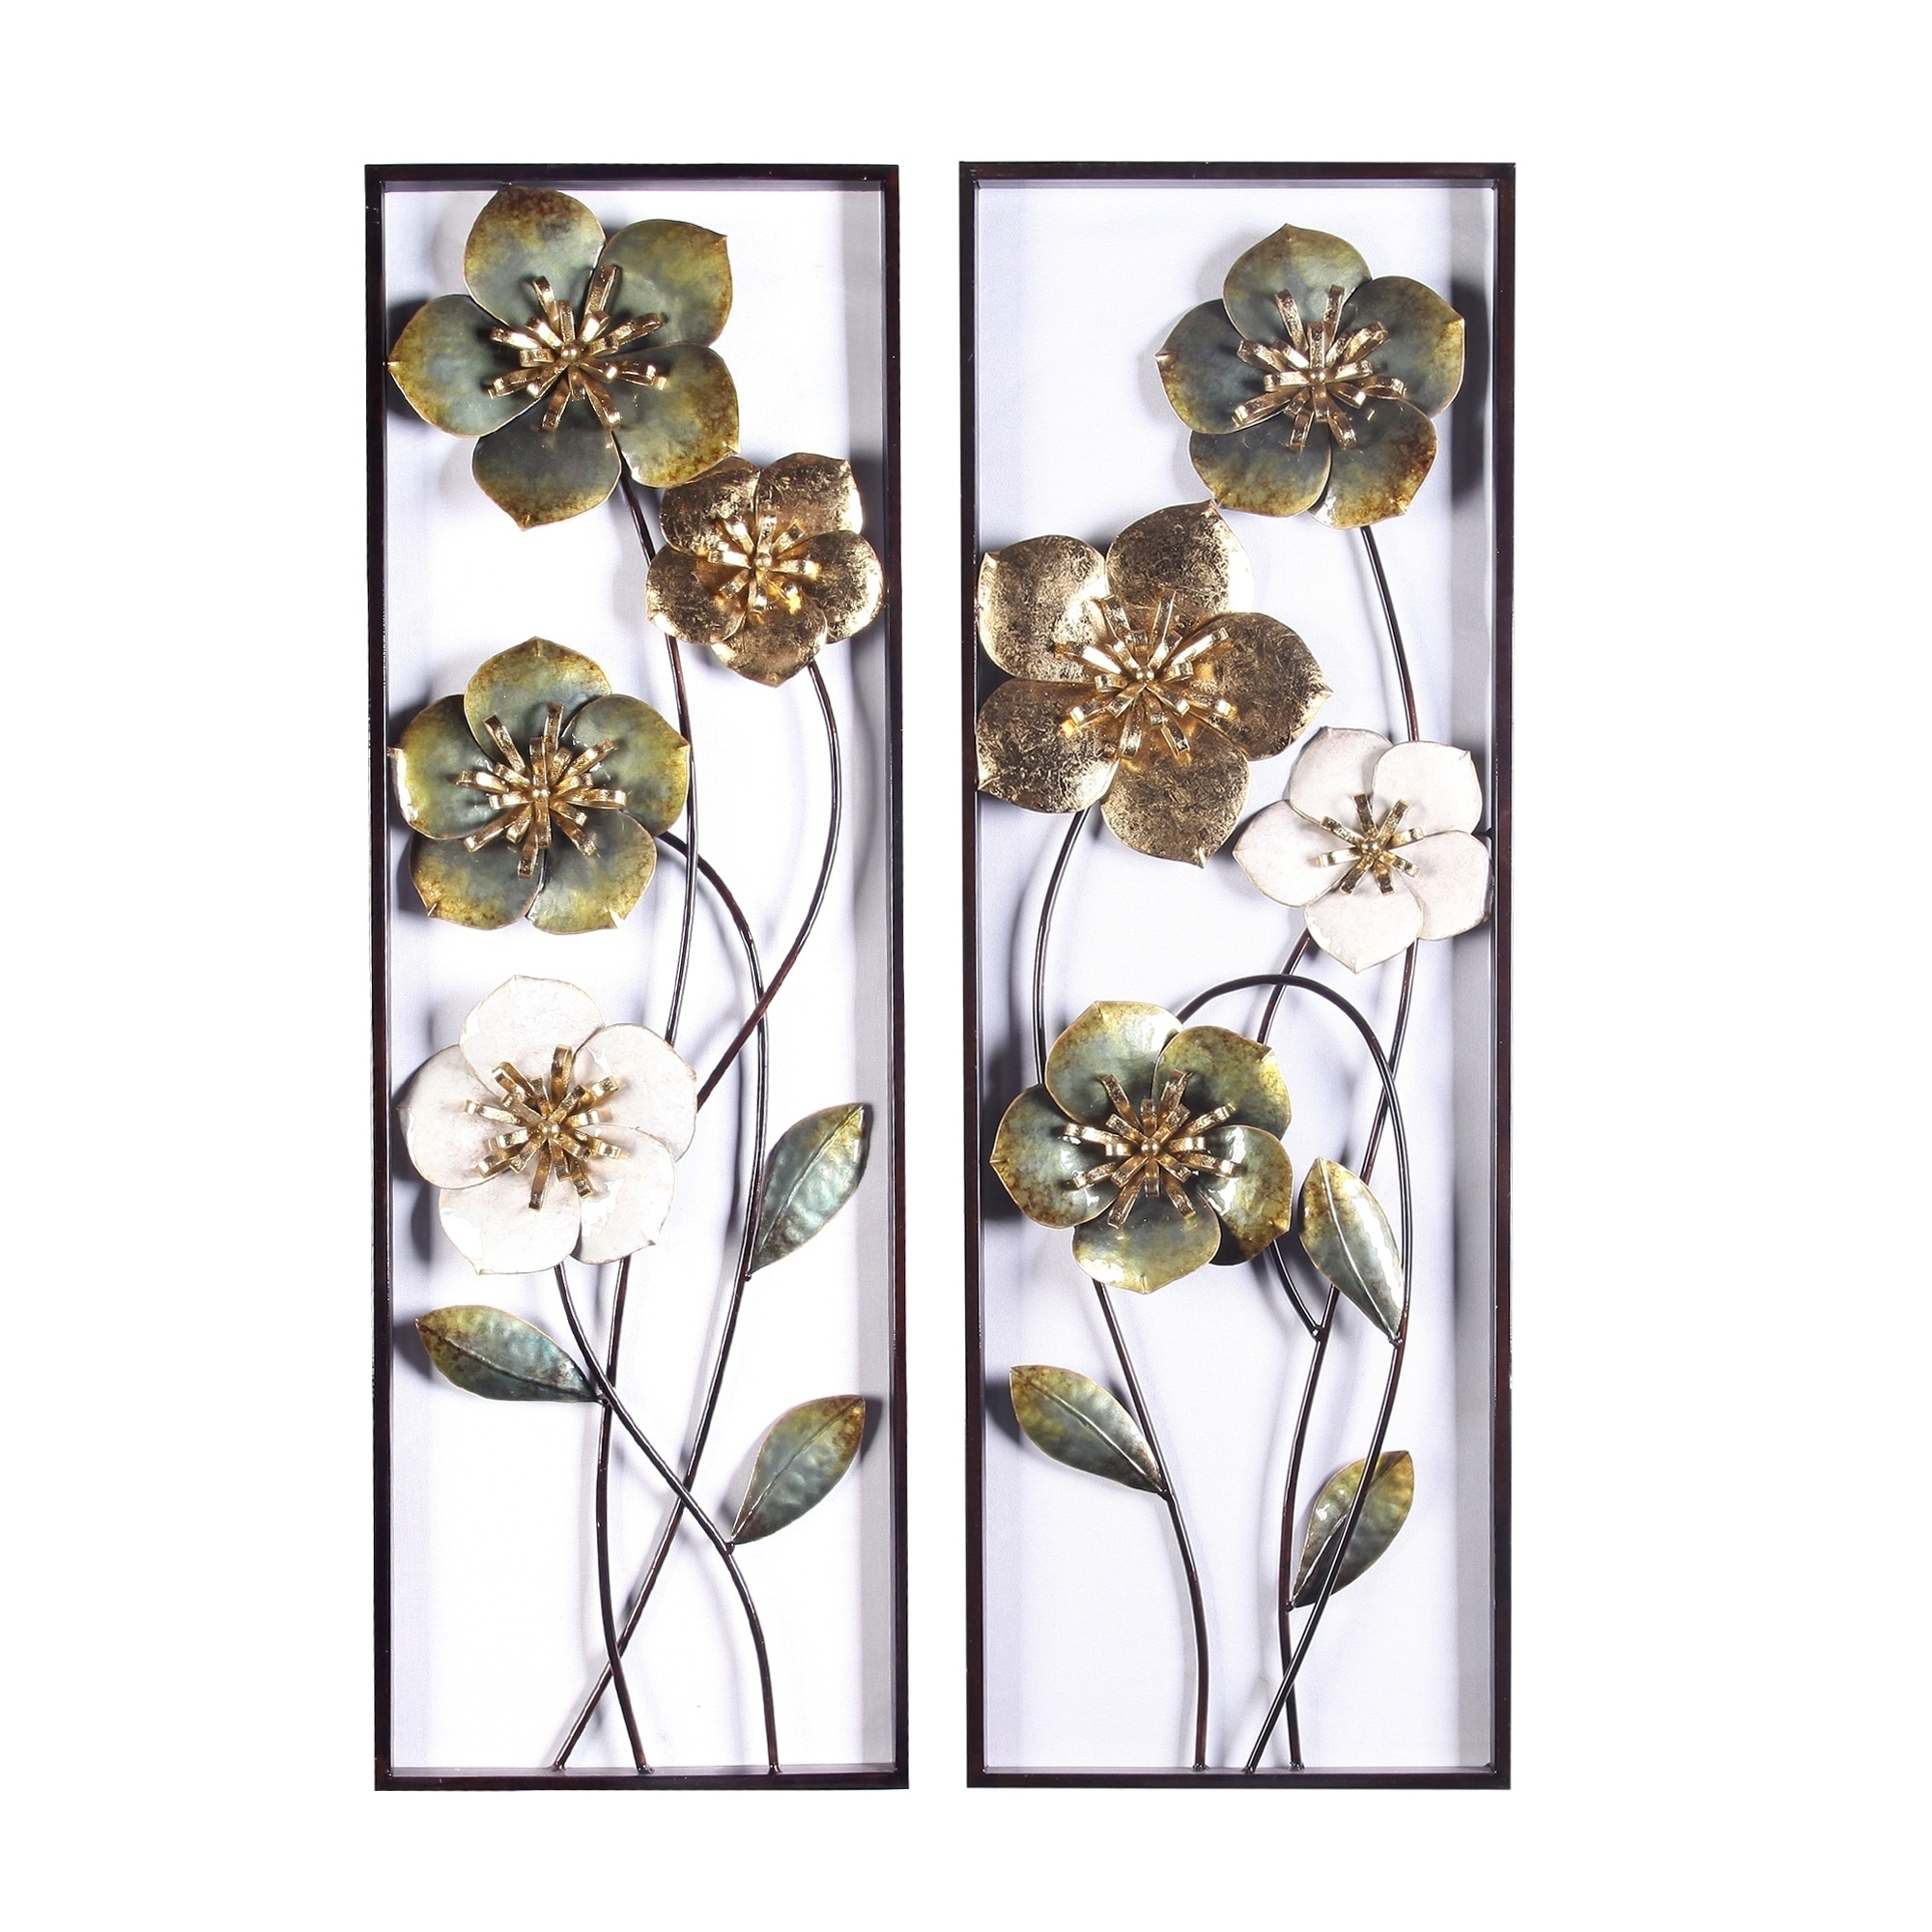 2pc Metal Flowers Wall Decor Overstock 29213849